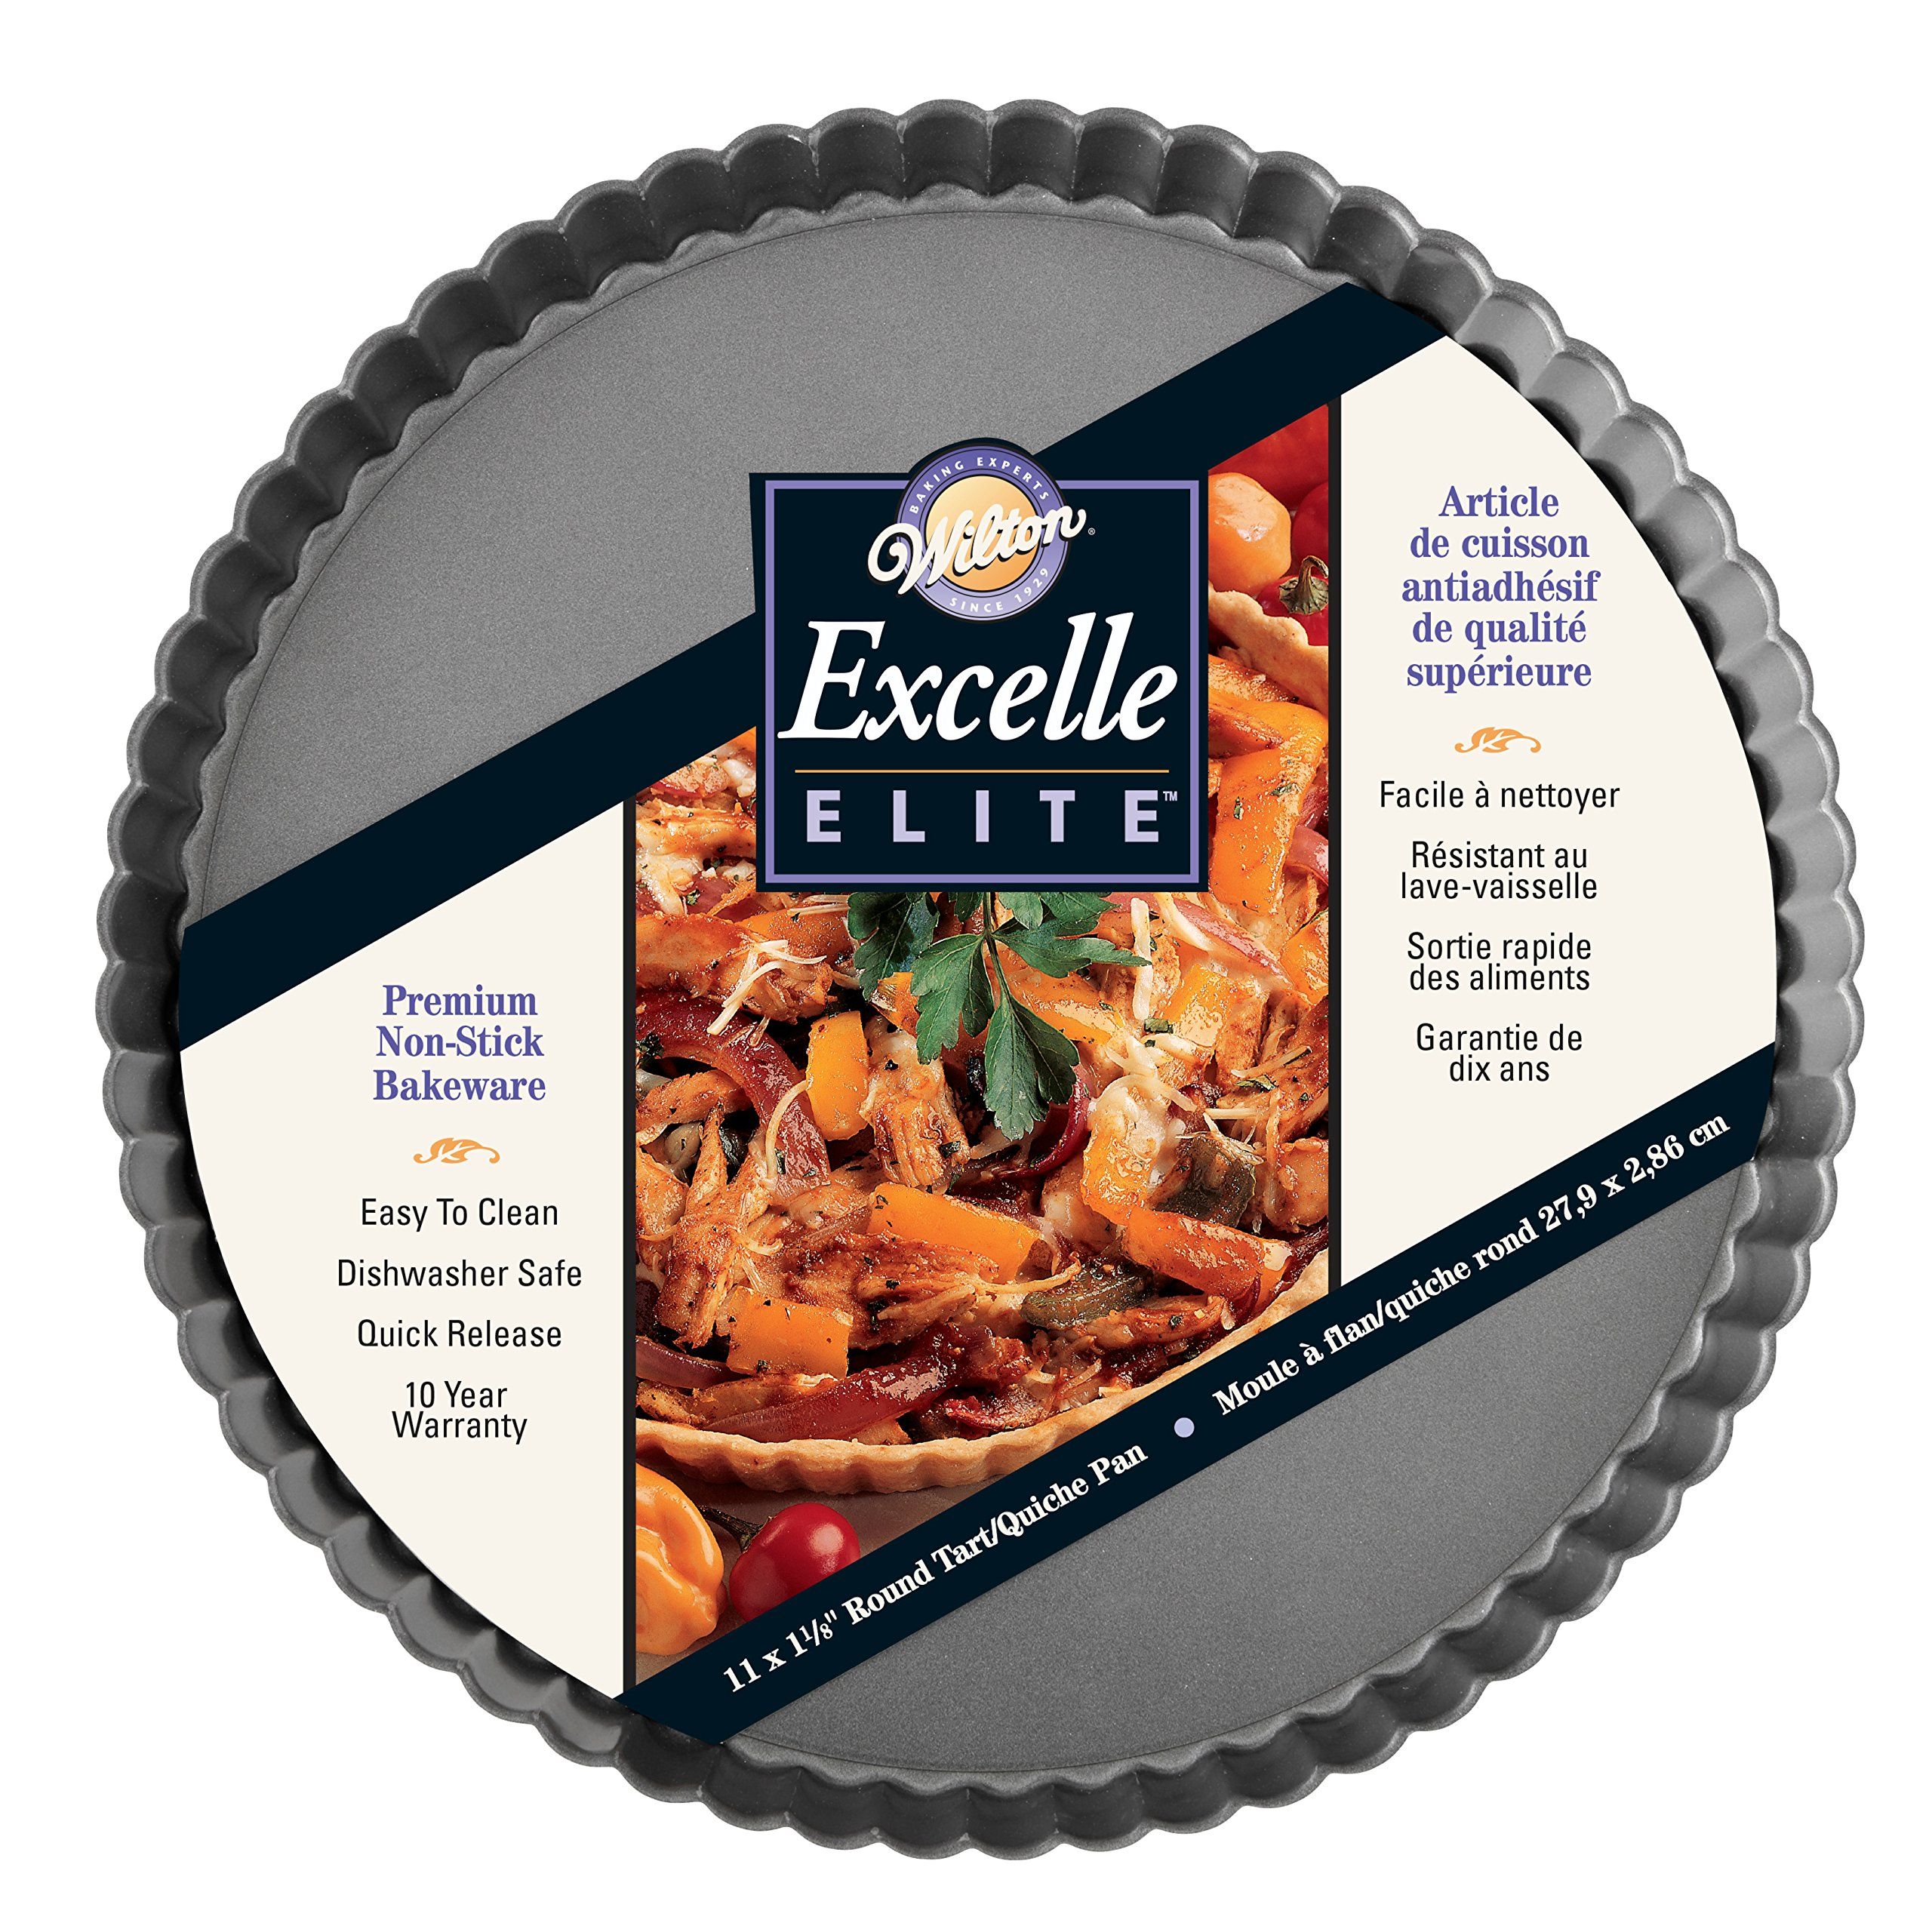 Wilton Excelle Elite Non-Stick Tart Pan and Quiche Pan with Removable Bottom, 11-Inch by Wilton (Image #2)